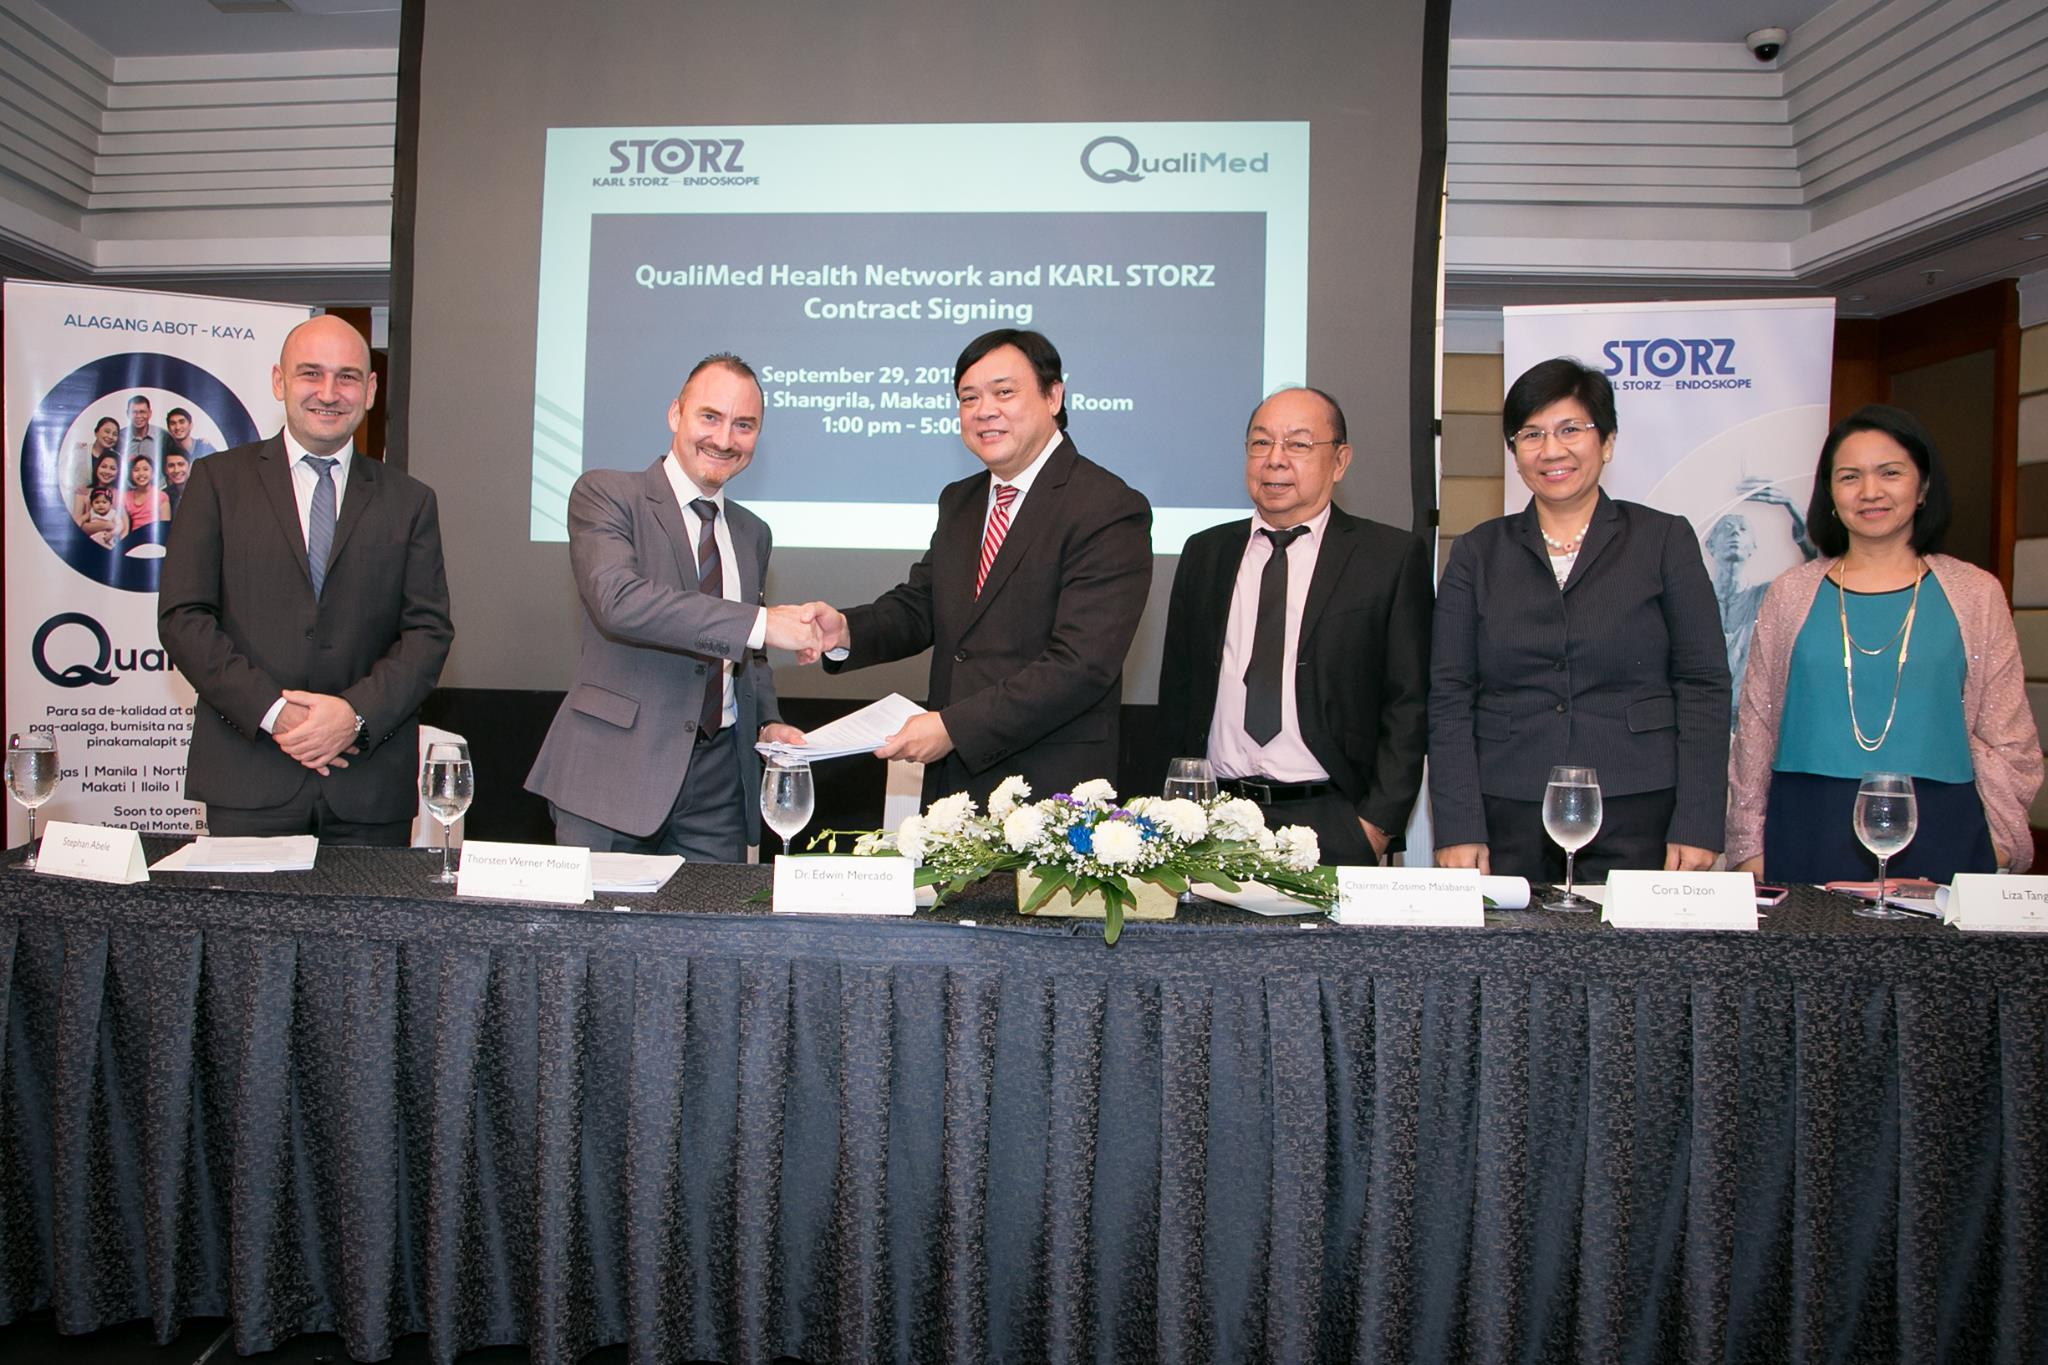 Qualimed and Karl Storz Seal Partnership